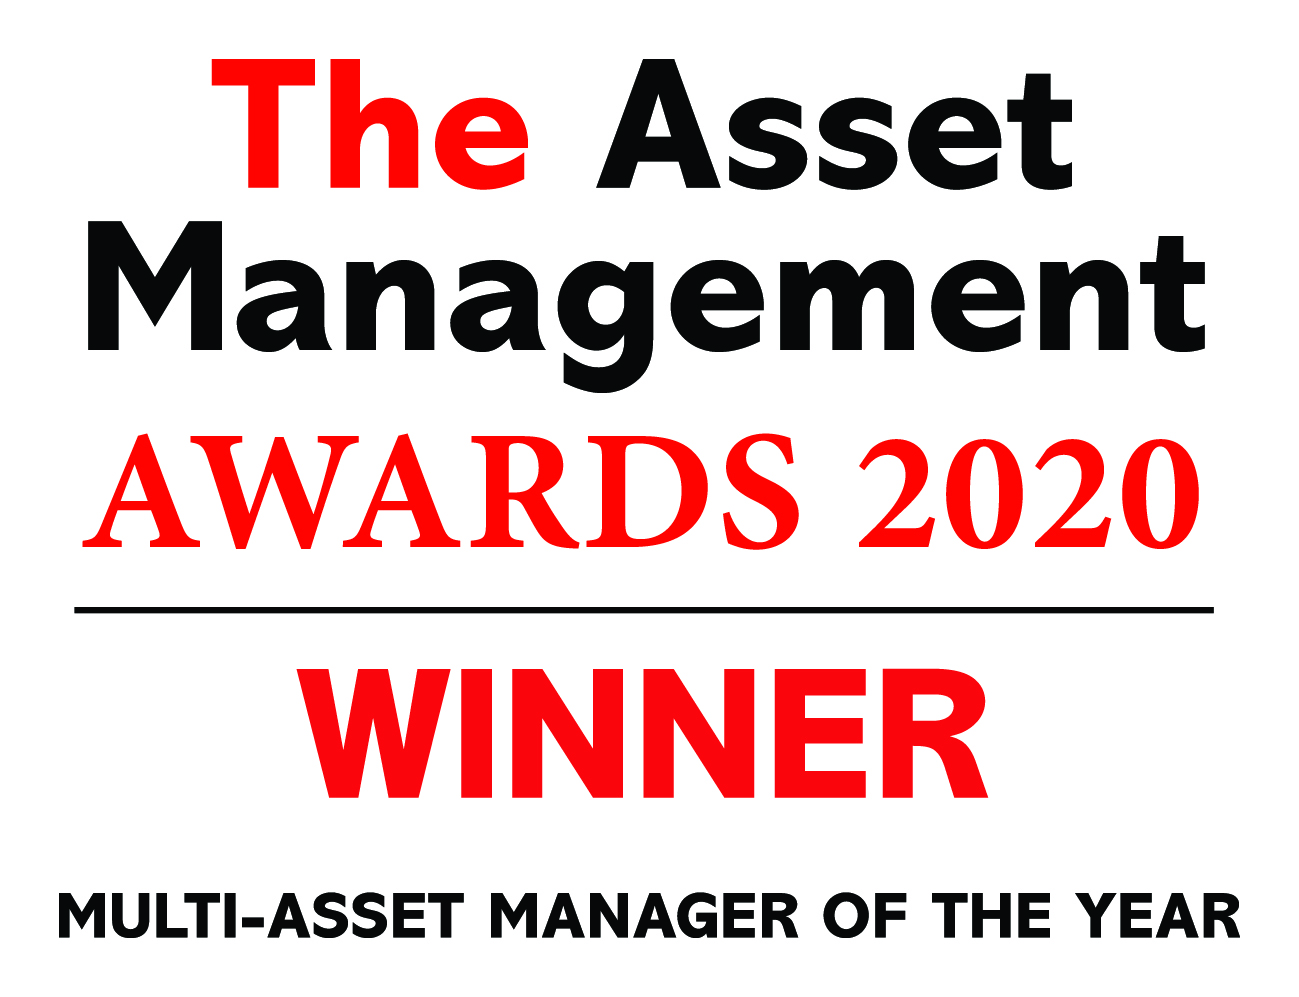 Multi-Asset Manager of the Year